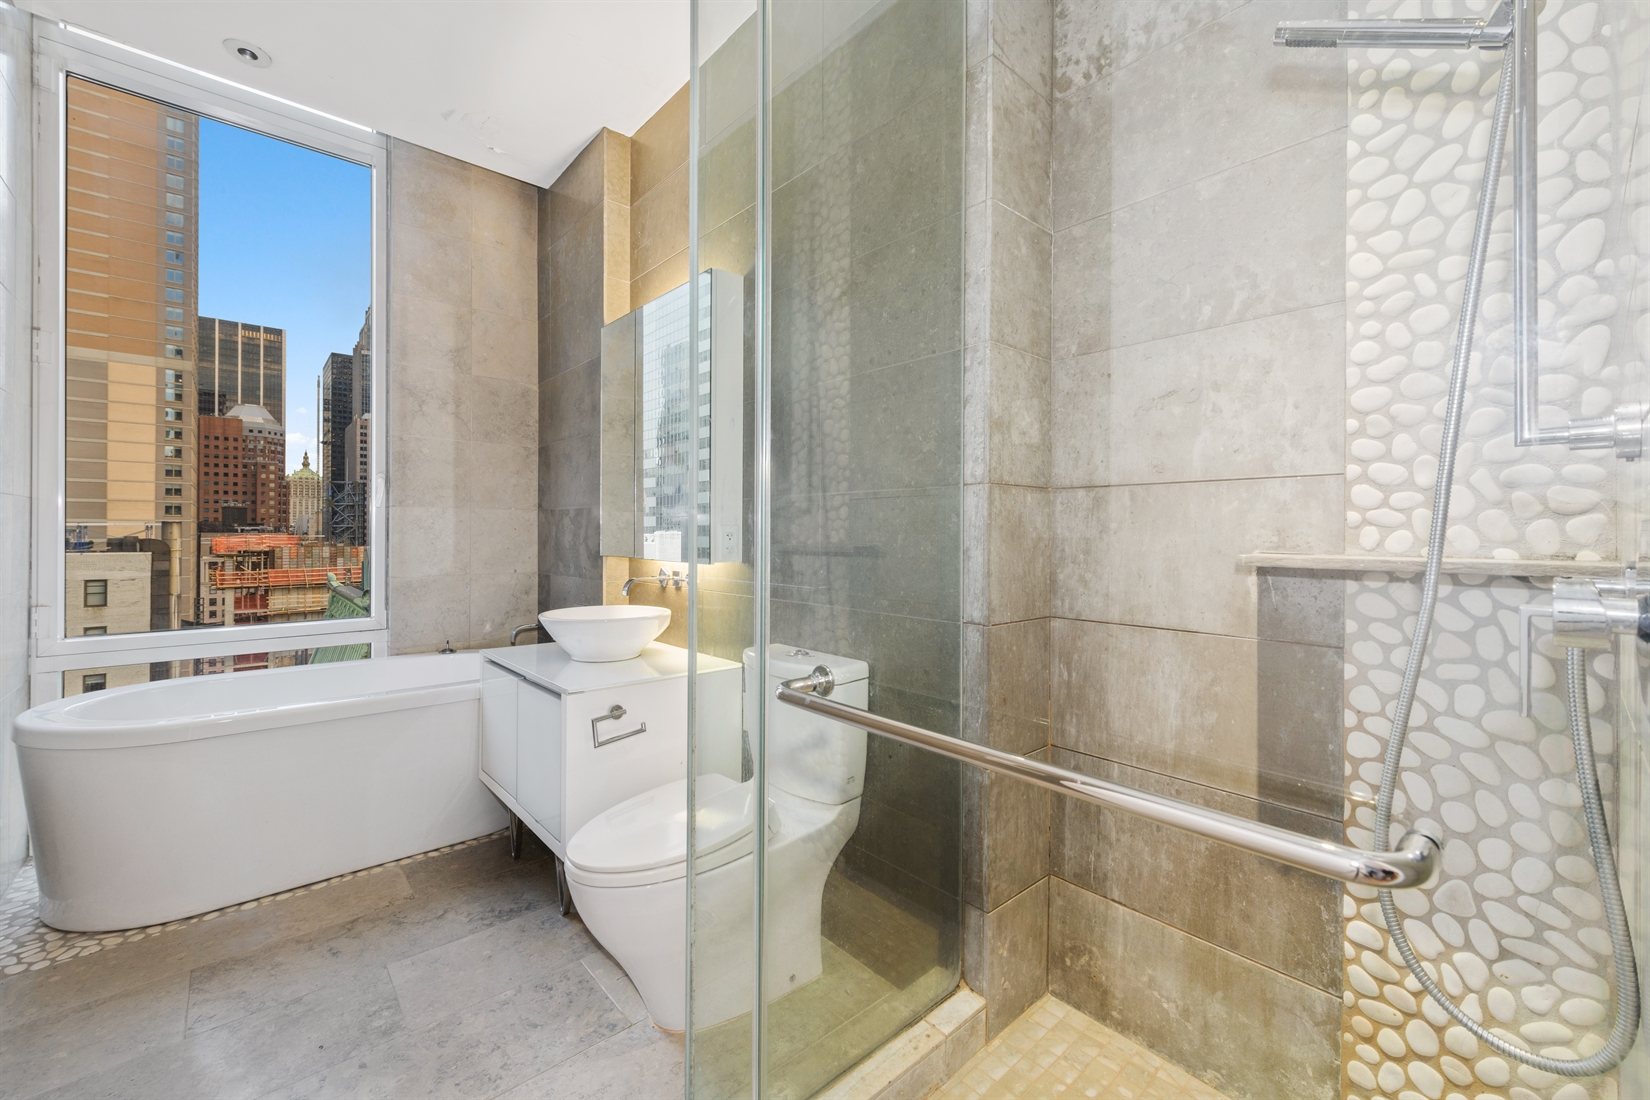 Apartment for sale at 247 West 46th Street, Apt 2105